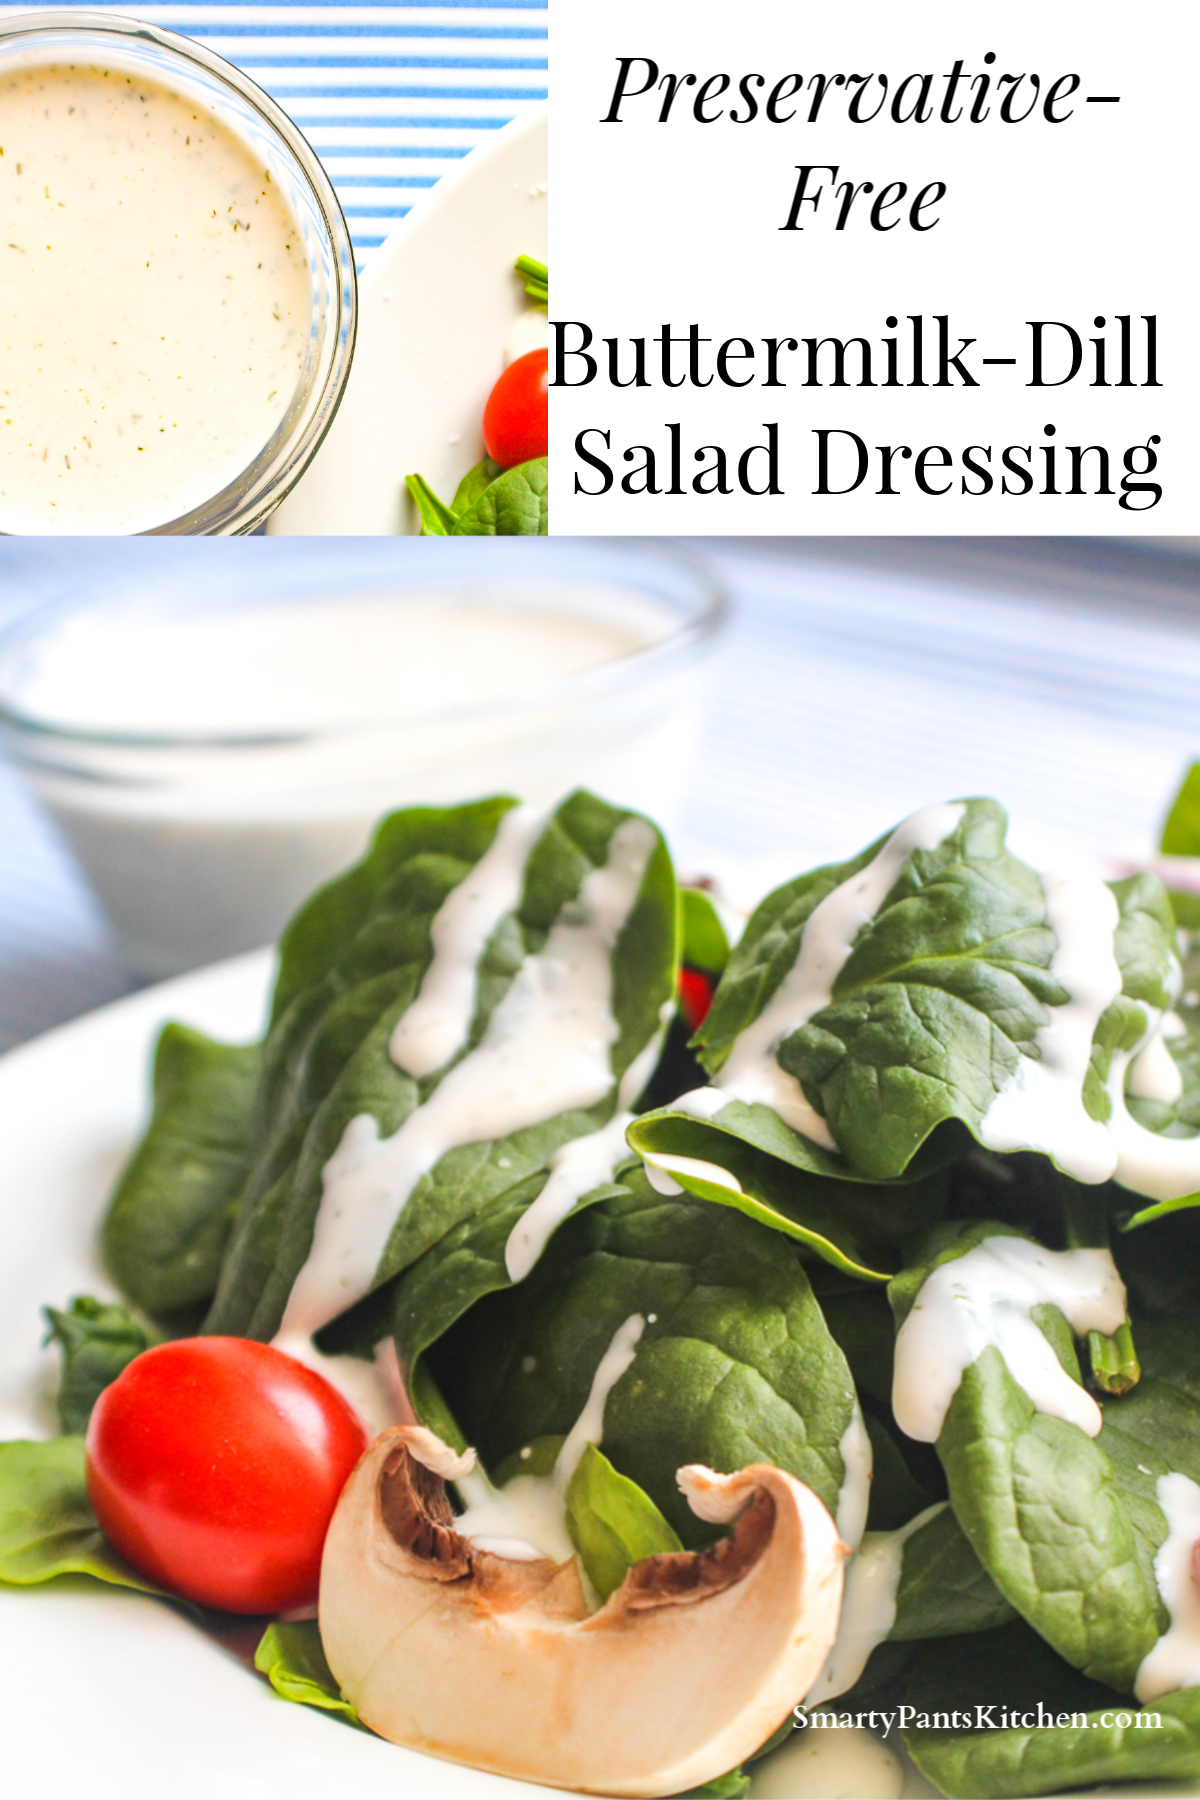 Buttermilk Dill Dressing Recipe In 2020 Salad Dressing Recipes Healthy Condiment Recipes Homemade Salads